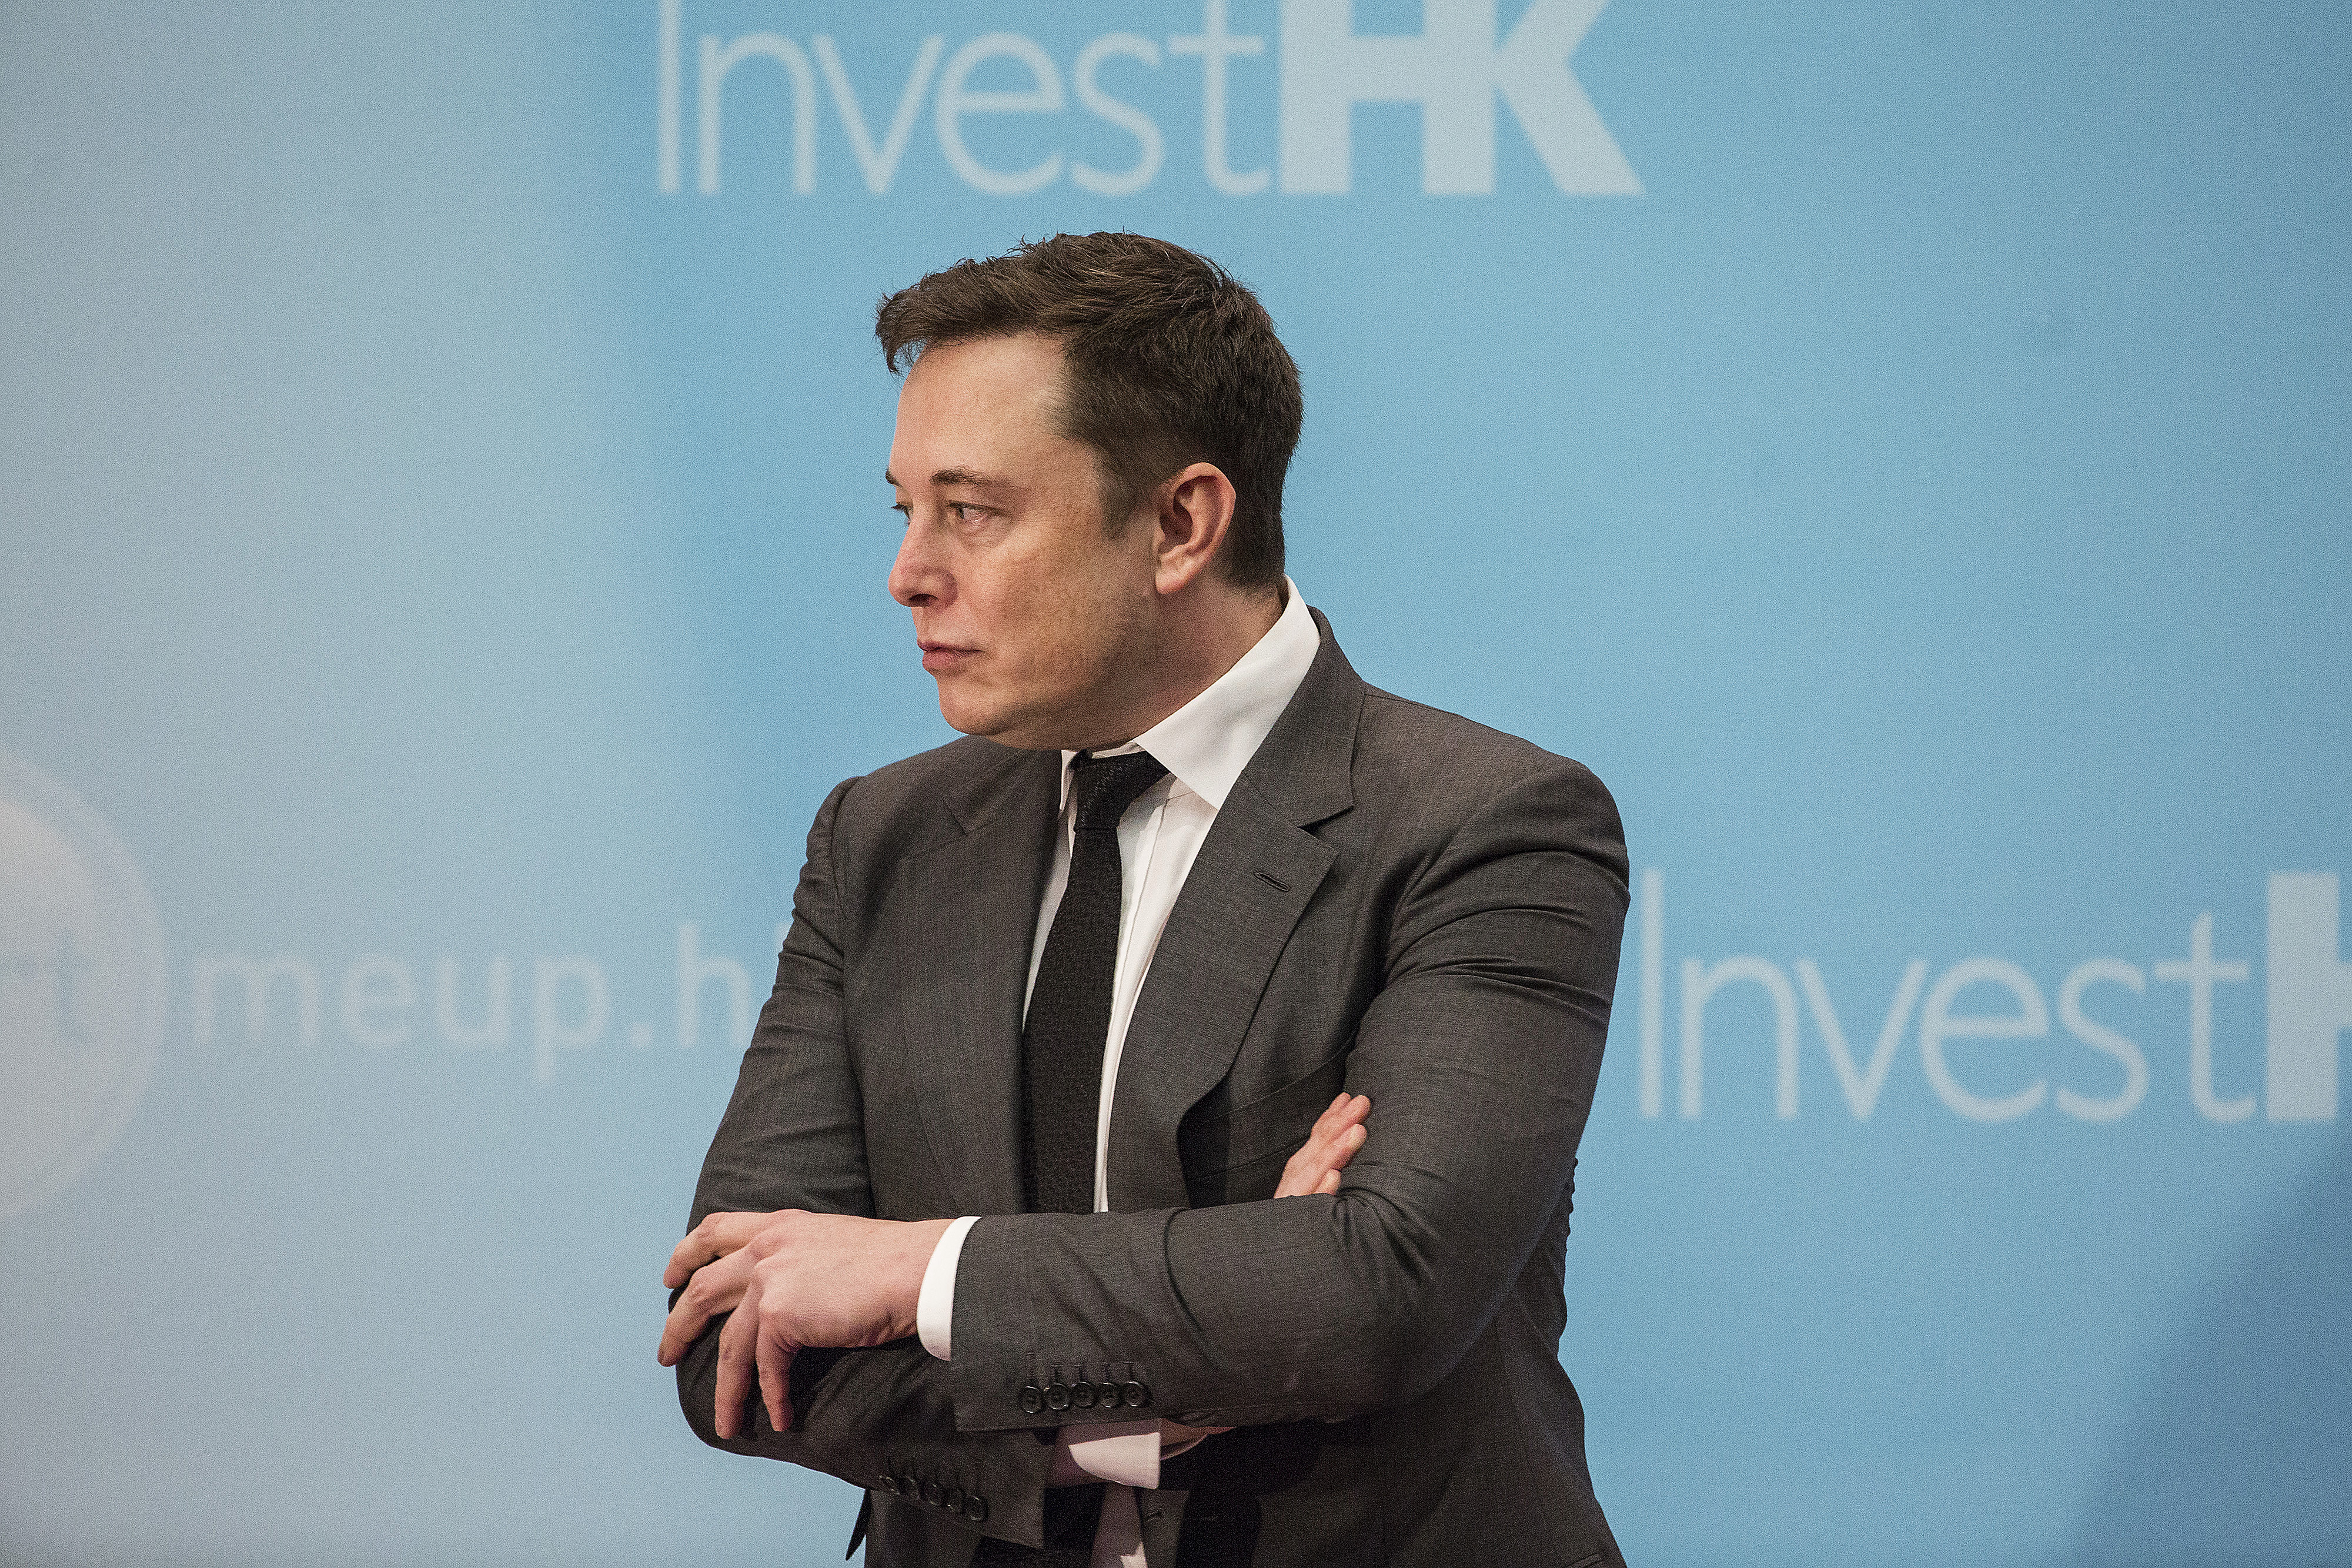 Billionaire Elon Musk, chief executive officer of Tesla Motors Inc., stands on stage during the StartmeupHK Venture Forum in Hong Kong, China, on Tuesday, Jan. 26, 2016.